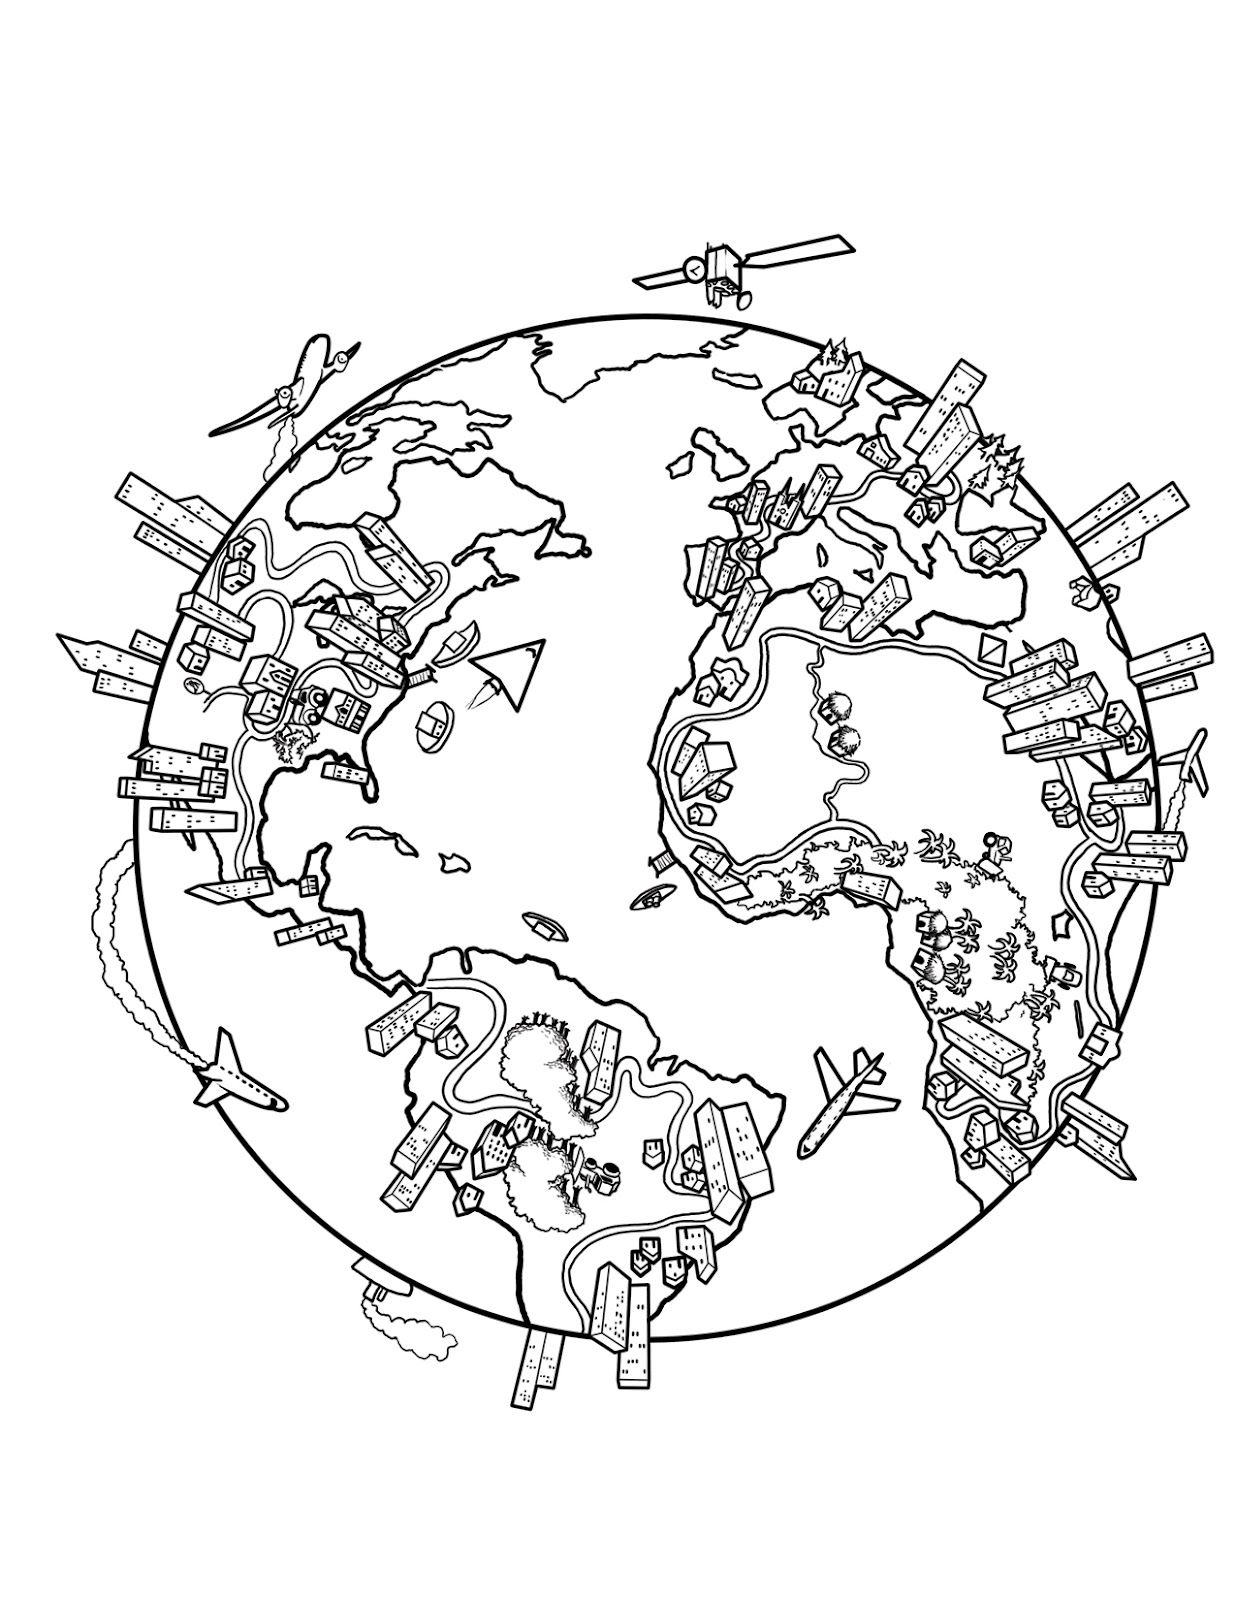 world map coloring page this is a drawing i did a while back